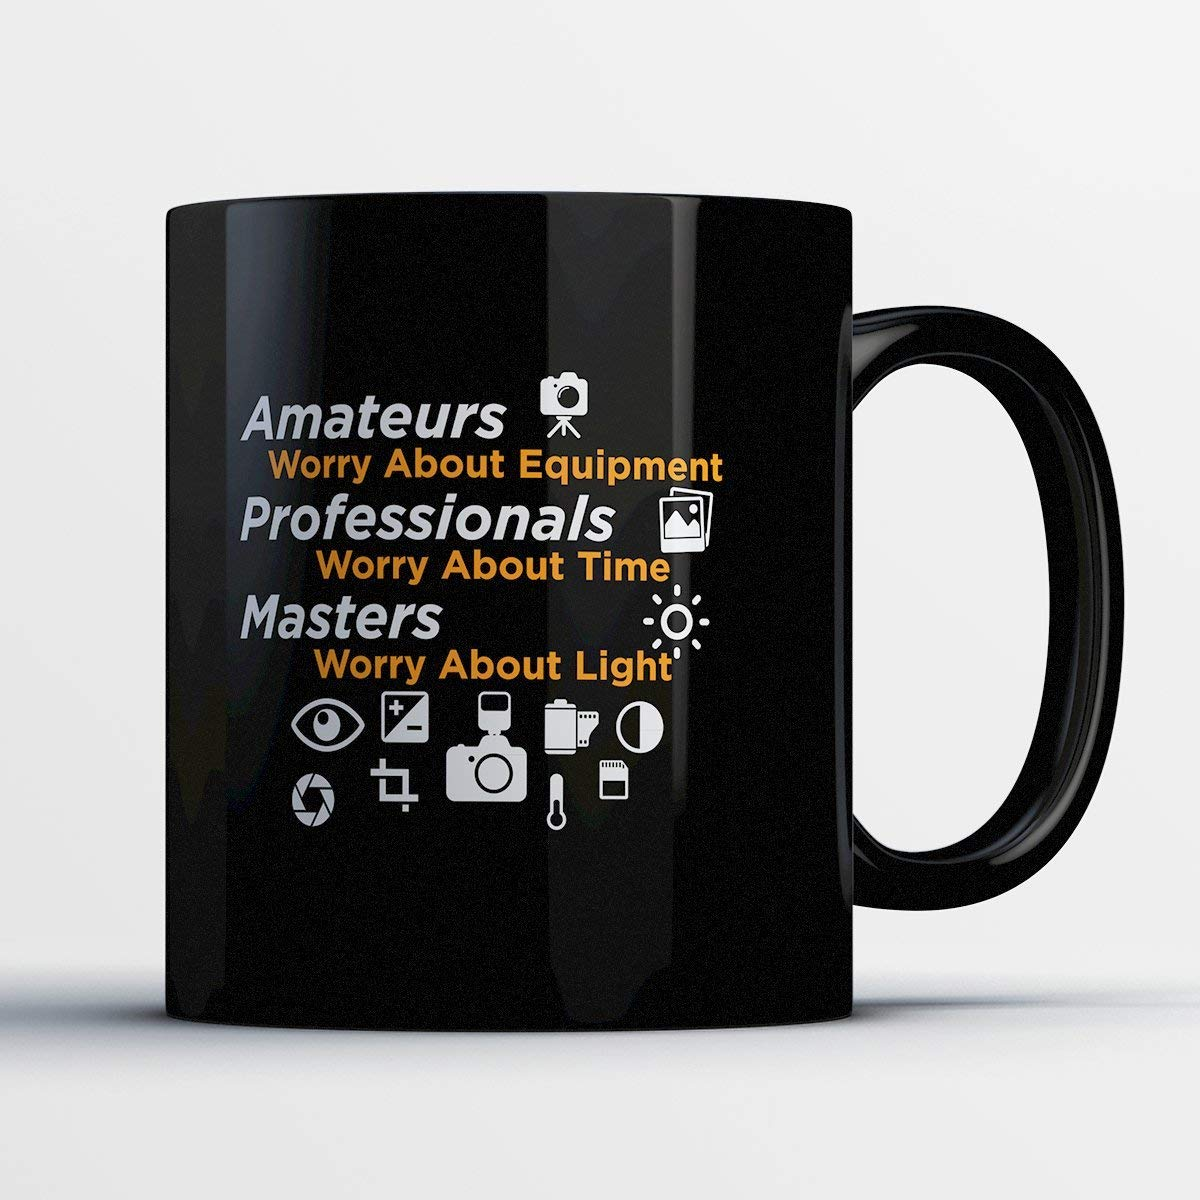 Photographer Coffee Mug - Masters Worry About Light - Adorable 11 oz Black Ceramic Tea Cup - Cute Photographer Gifts with Photographer Sayings